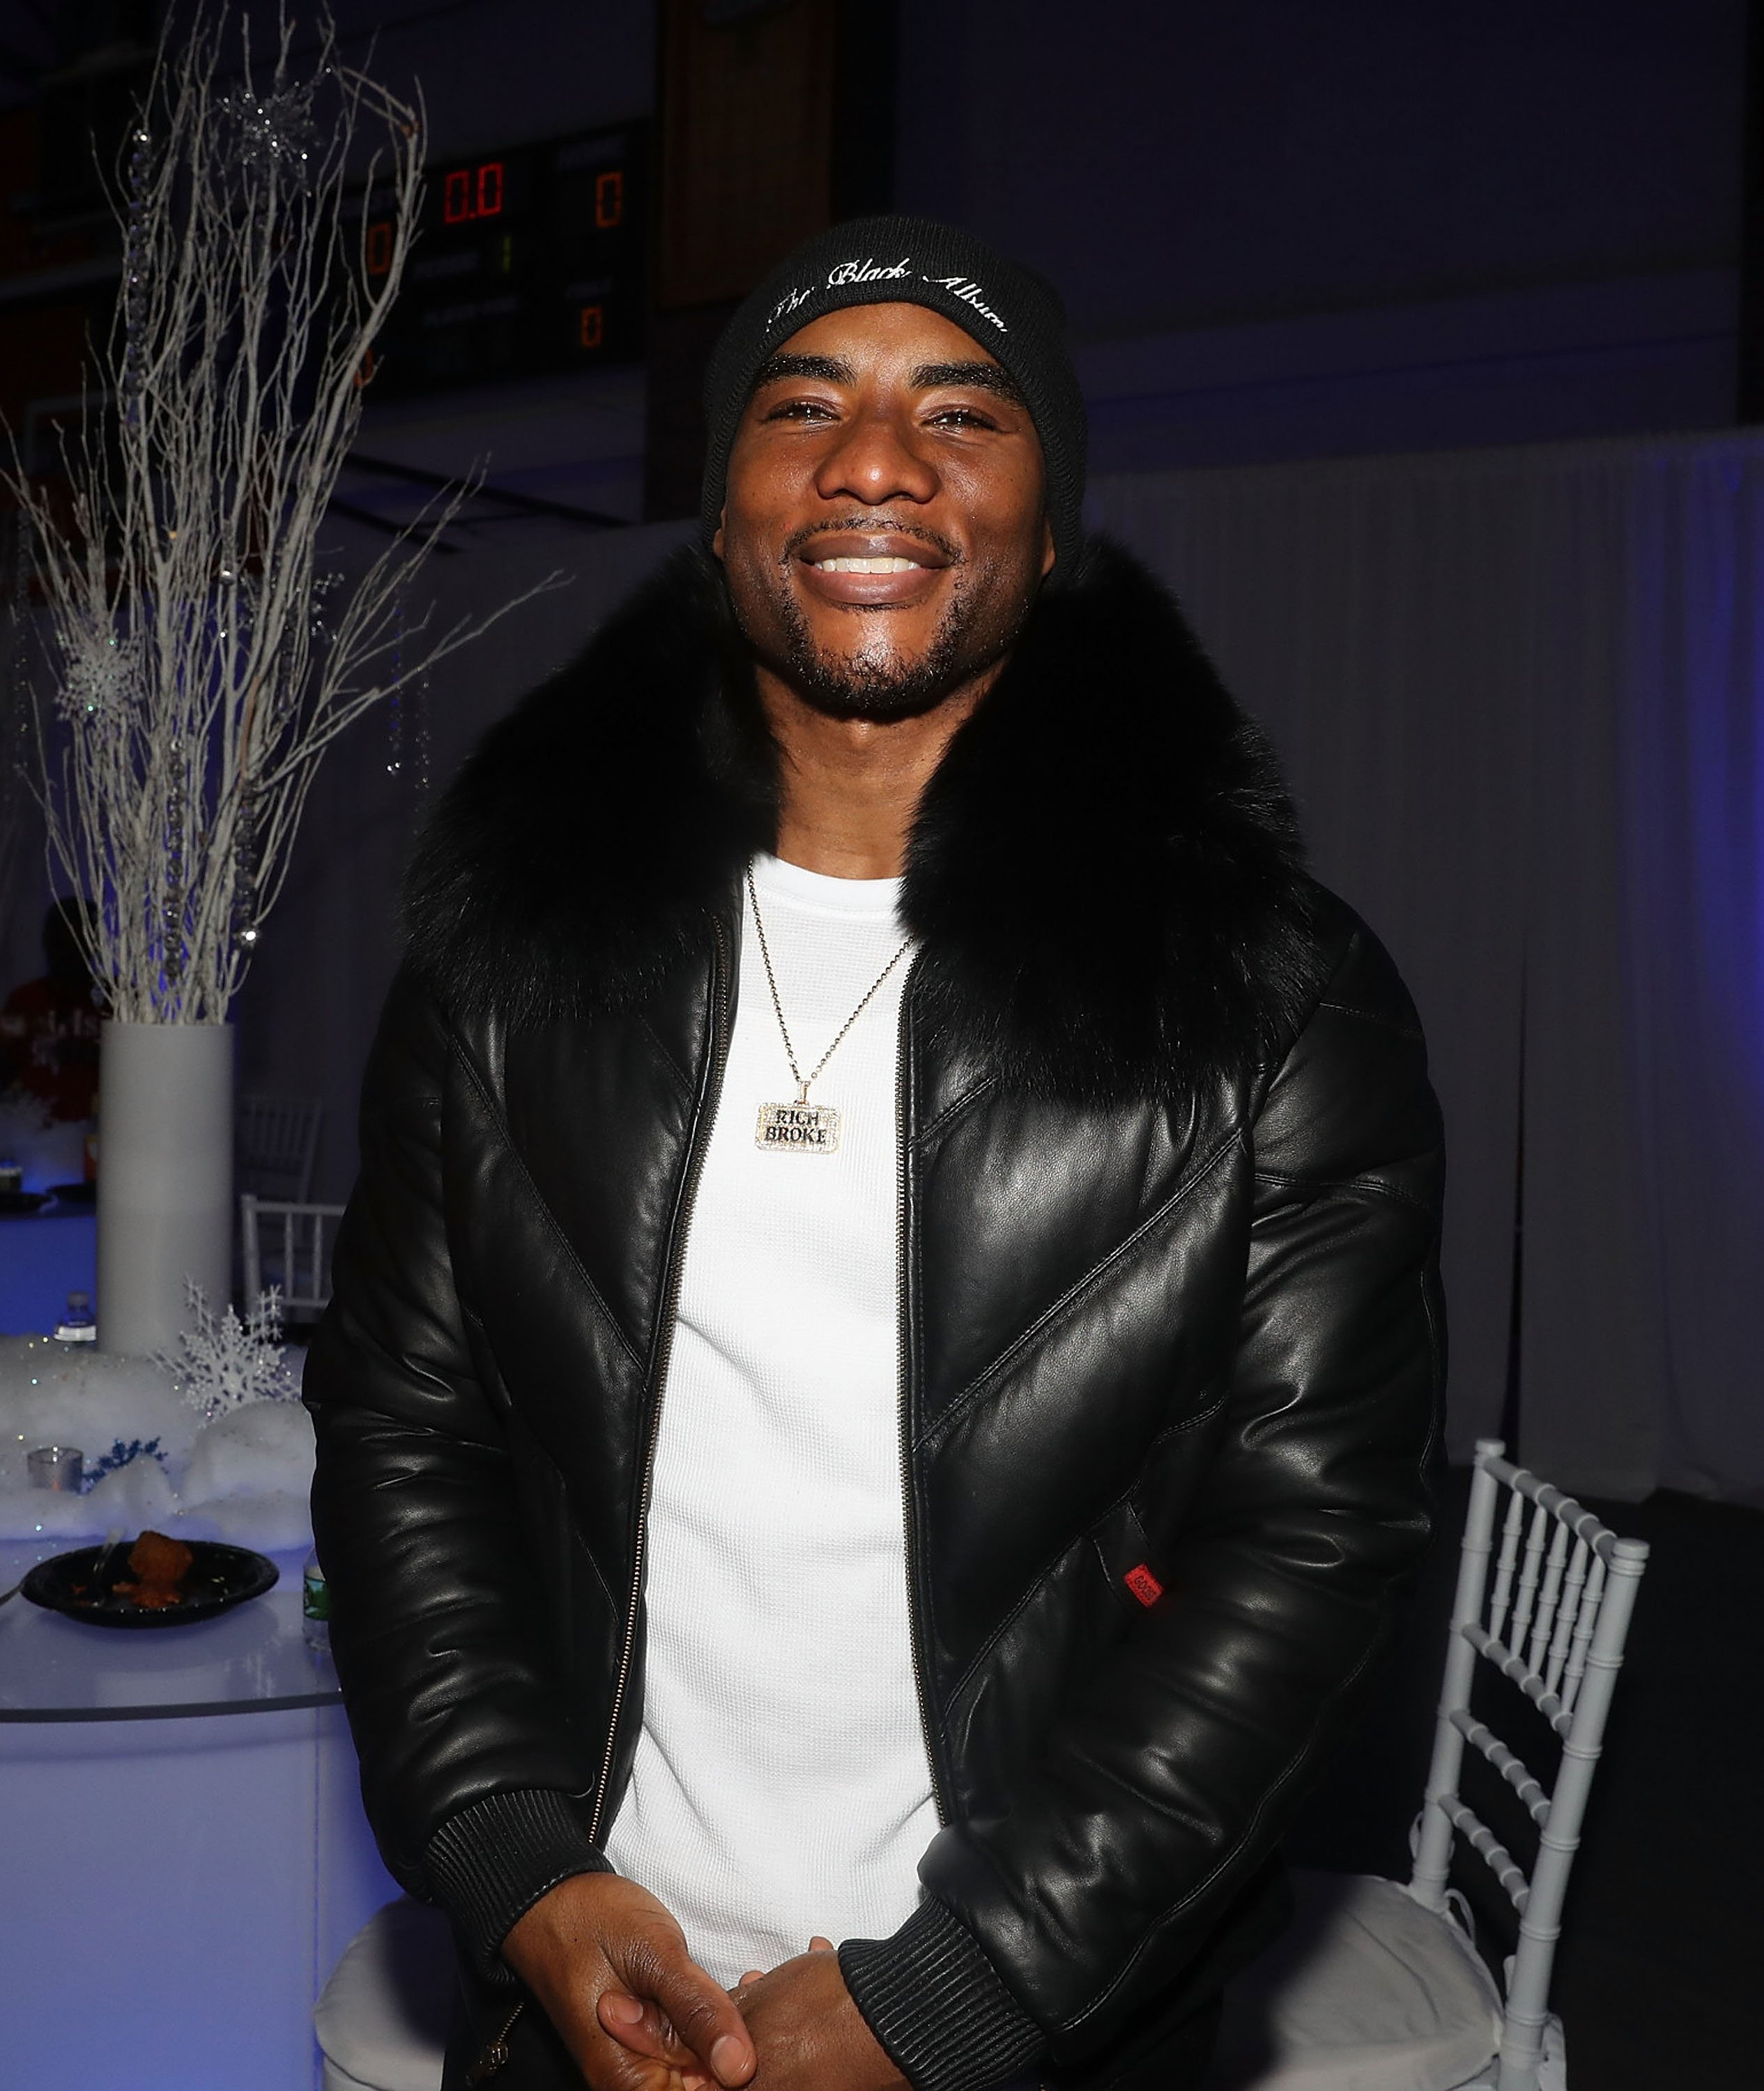 Radio personality Charlamagne Tha God at a charity event in 2018. | Photo: Getty Images